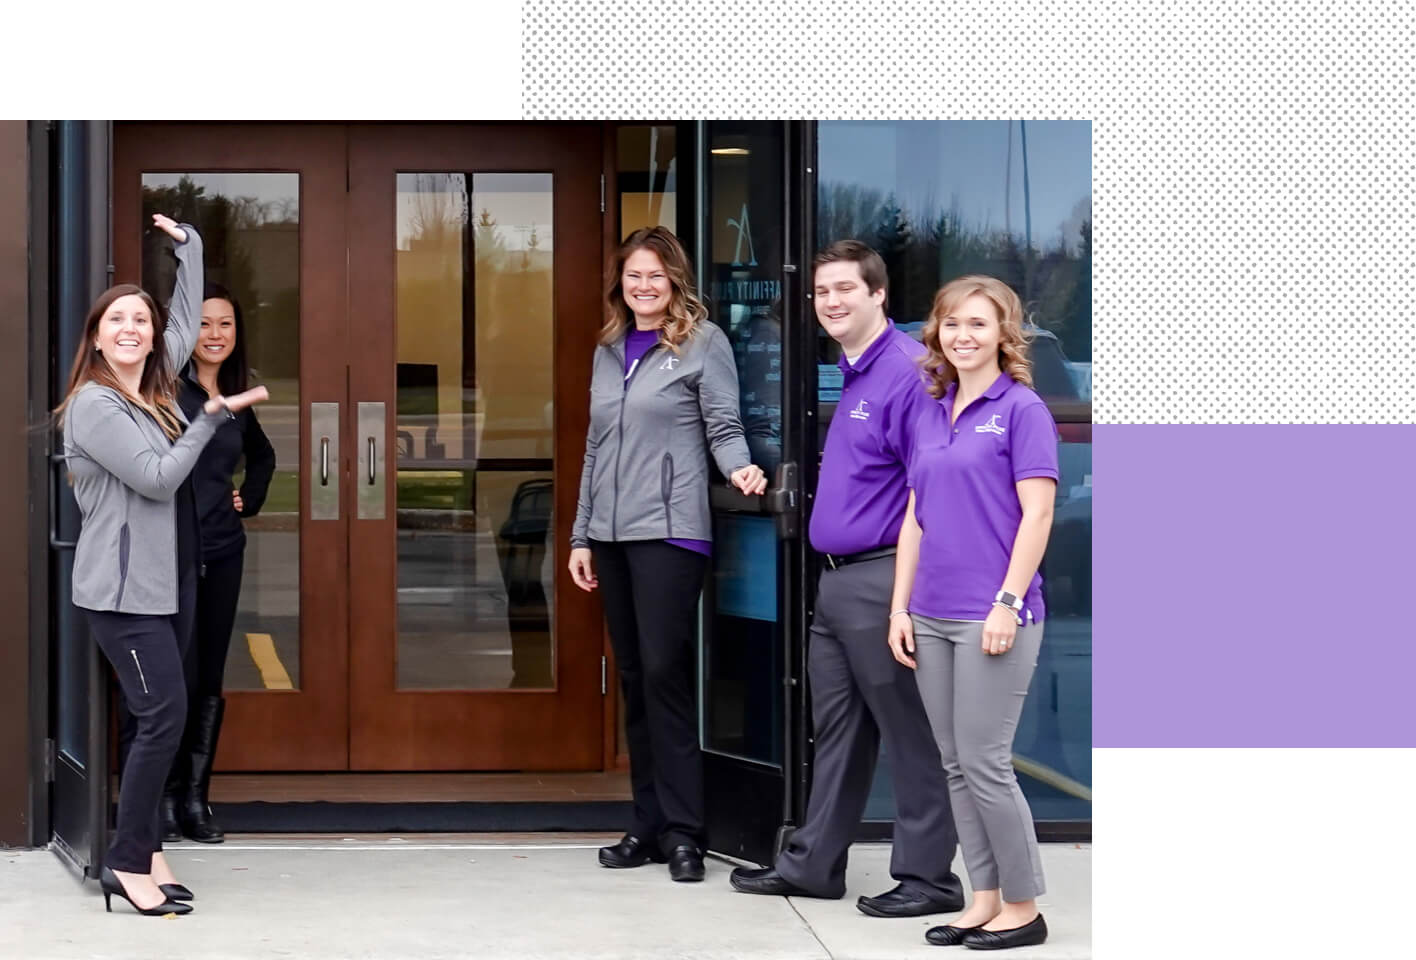 Five Affinity Plus employees stand in front of their local branch, smiling.